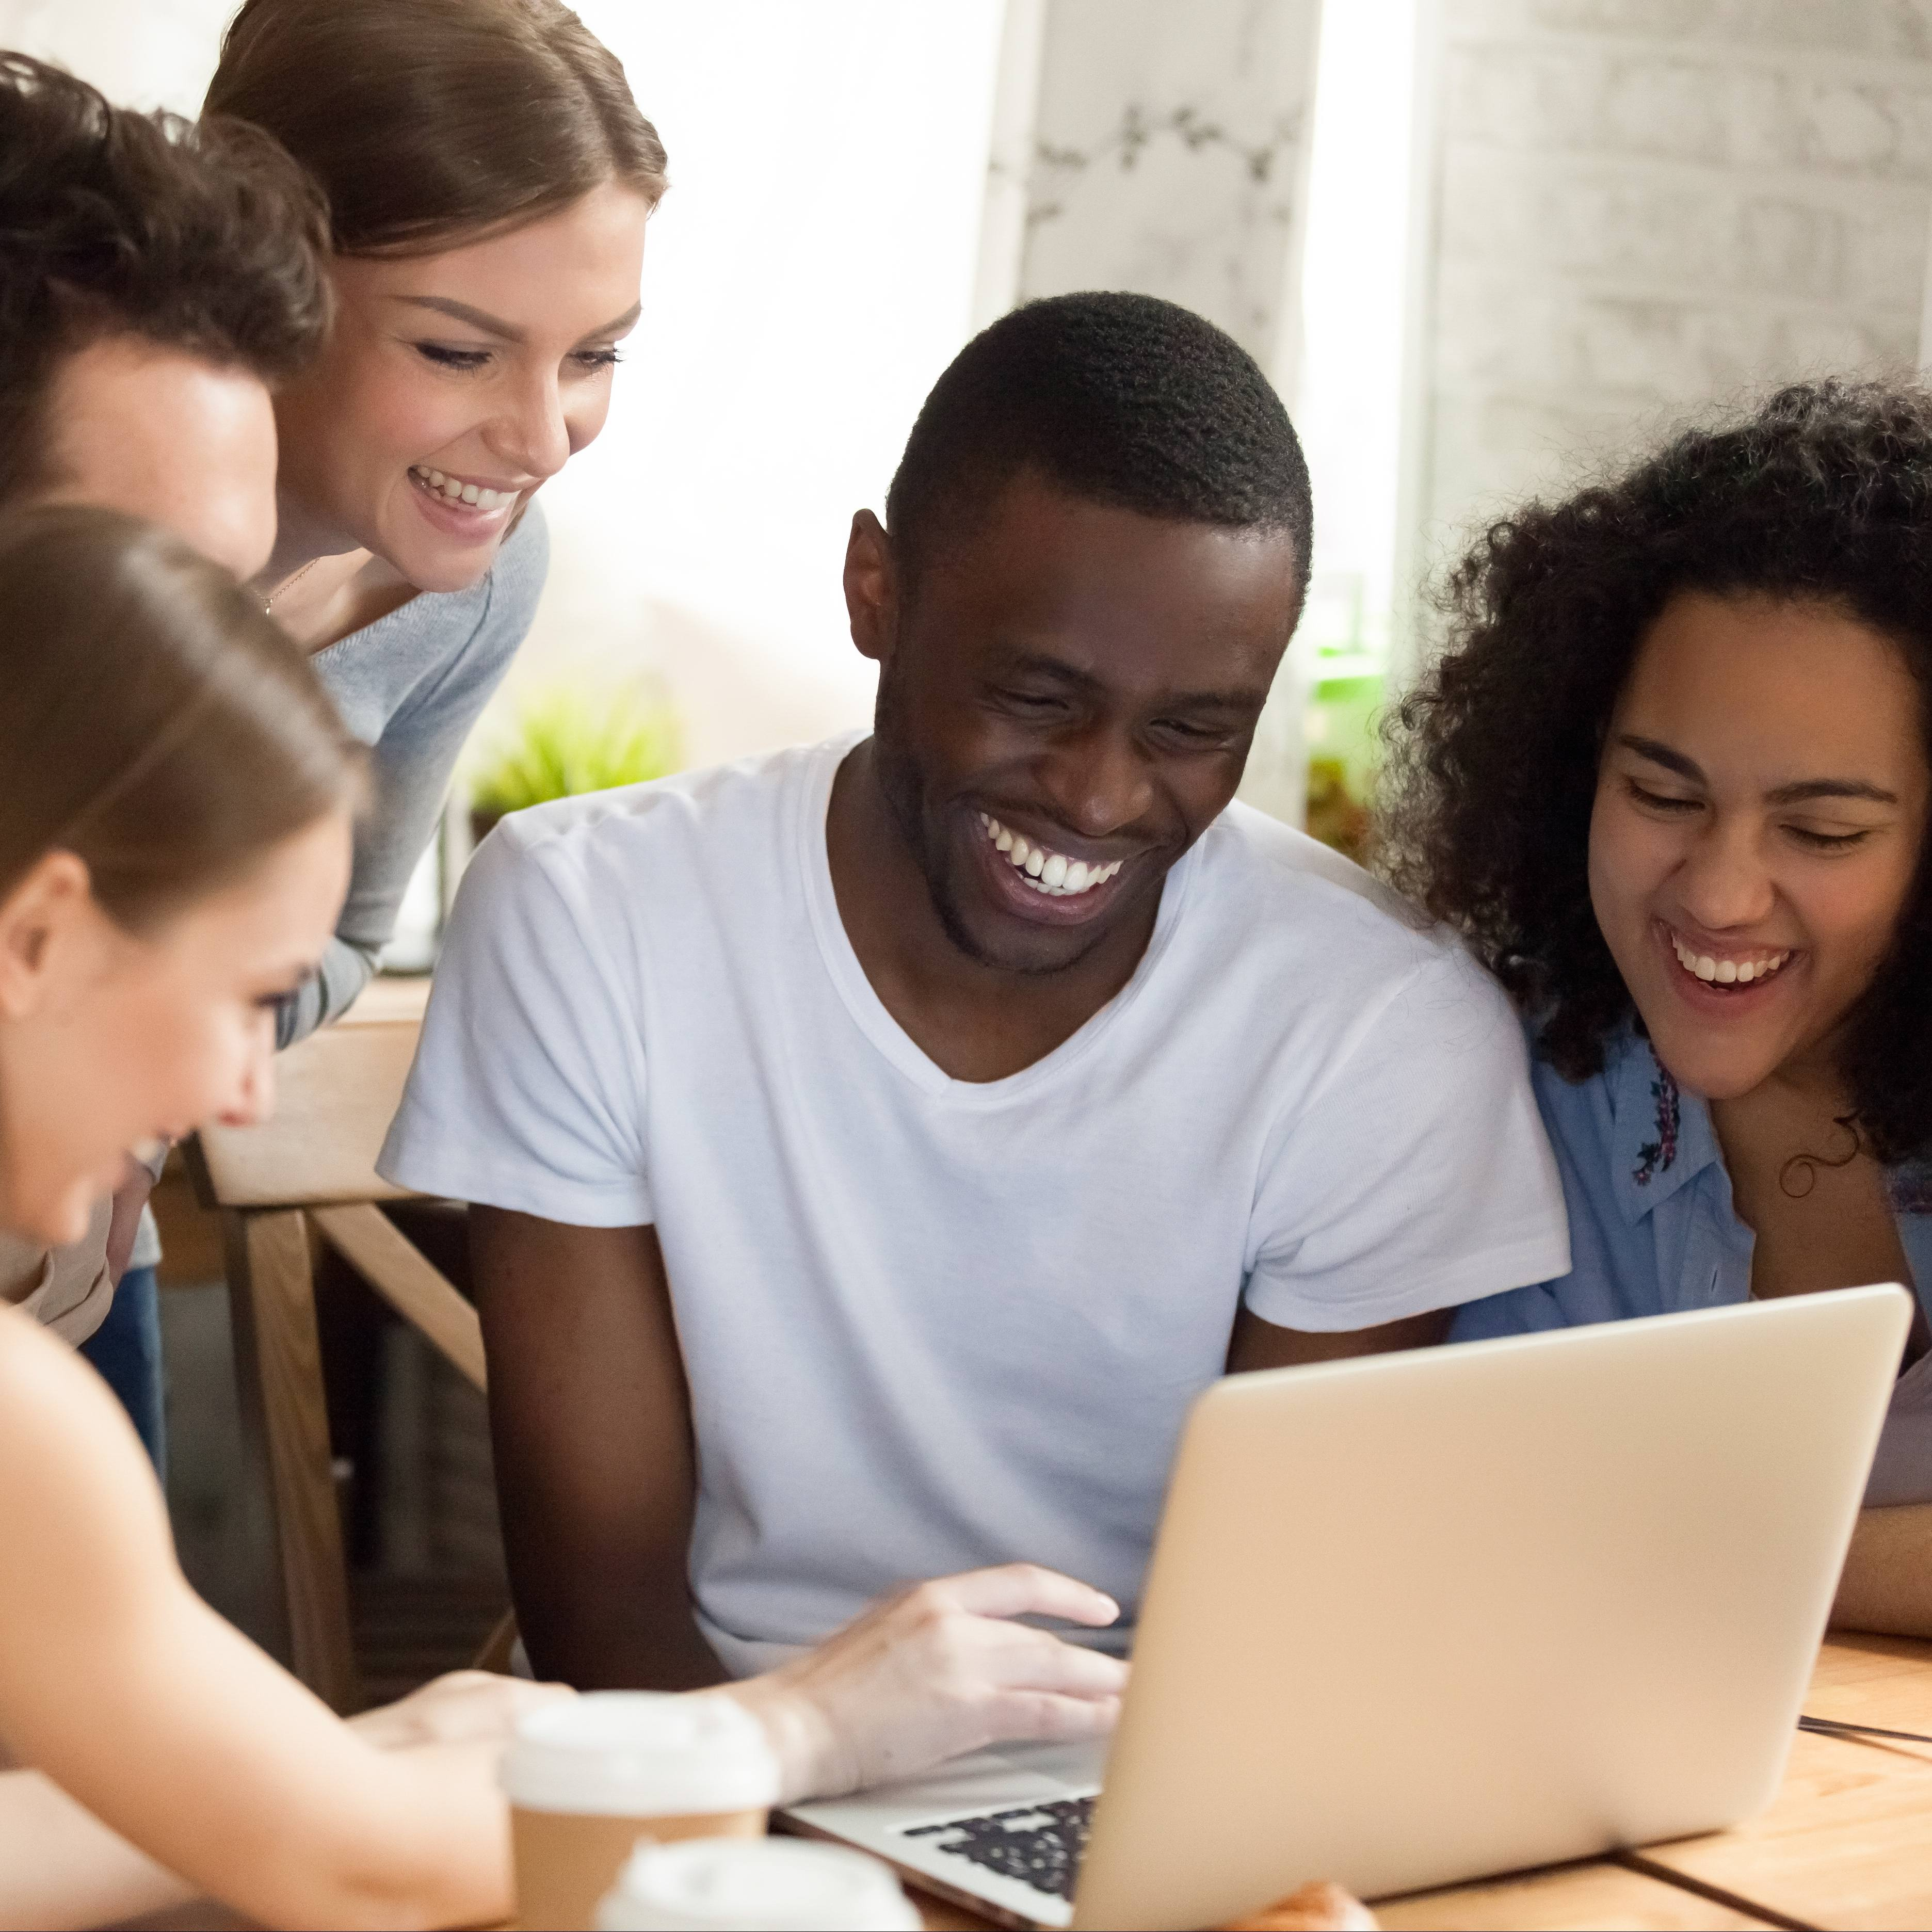 a group of young adult, perhaps university or college students gathered around a laptop computer, smiling, laughing and having fun together